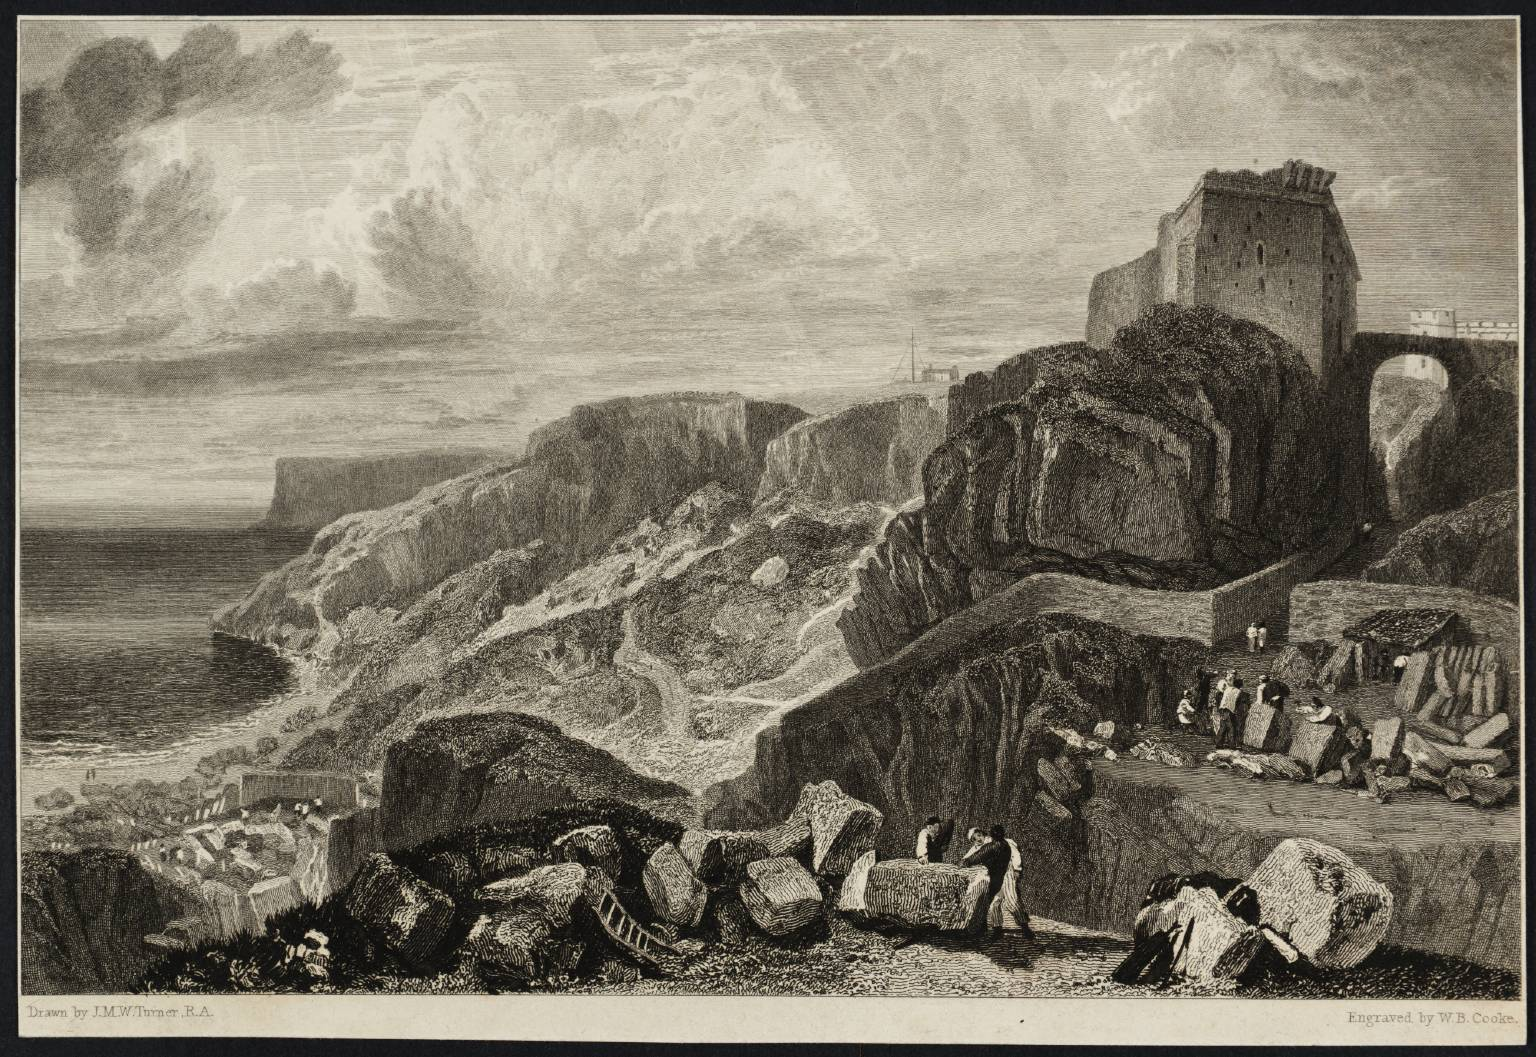 Bow and Arrow Castle, Isle of Portland, engraved by W.B. Cooke published 1817 by Joseph Mallord William Turner 1775-1851